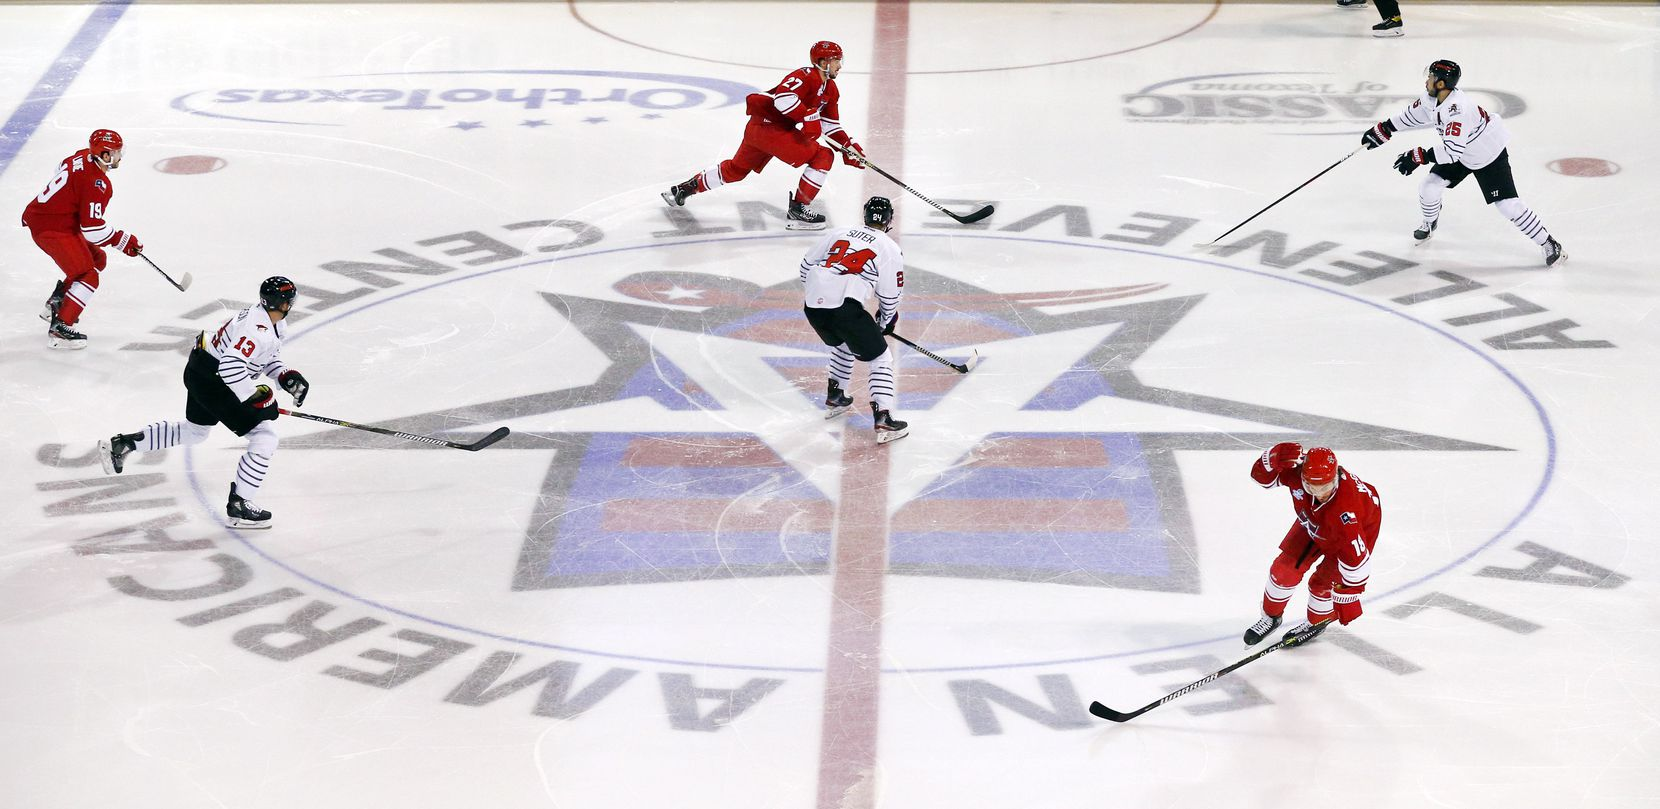 The Allen Americans and Rapid City Rush hockey players compete during the season opener at the Allen Event Center in Allen, Texas, Friday, December 18, 2020. This is the first professional hockey game in the metroplex since March. (Tom Fox/The Dallas Morning News)